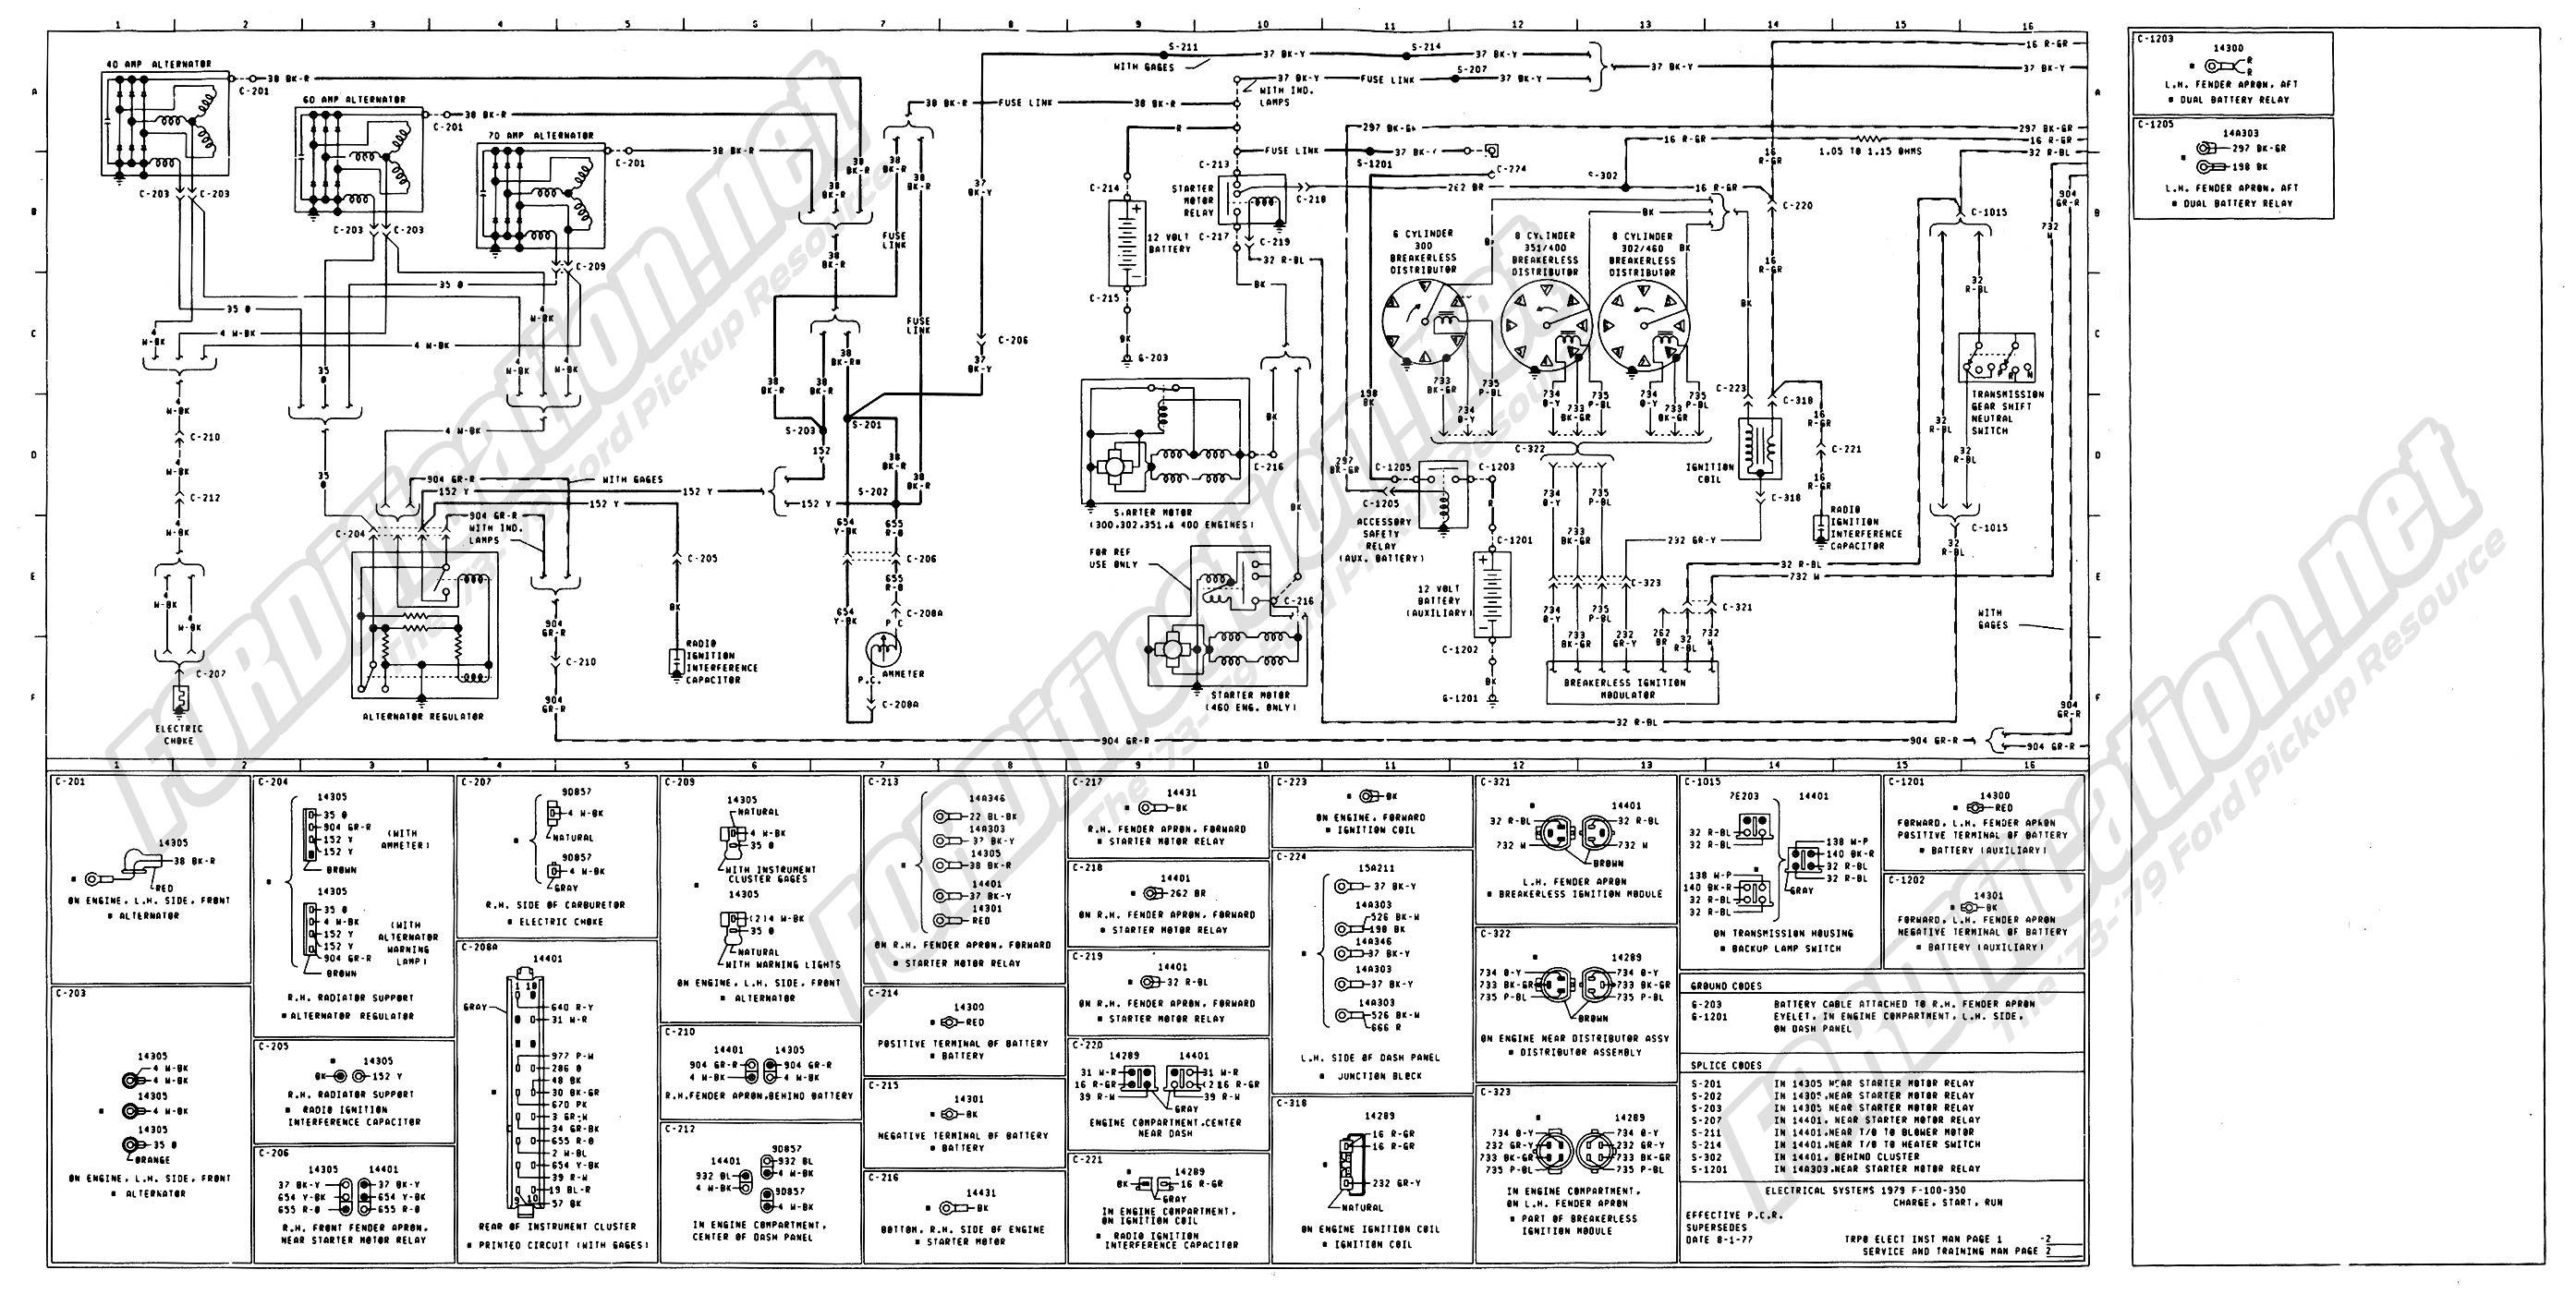 1973 1979 ford truck wiring diagrams schematics fordification net rh fordification net 1979 ford alternator wiring diagram 1979 ford bronco wiring diagram